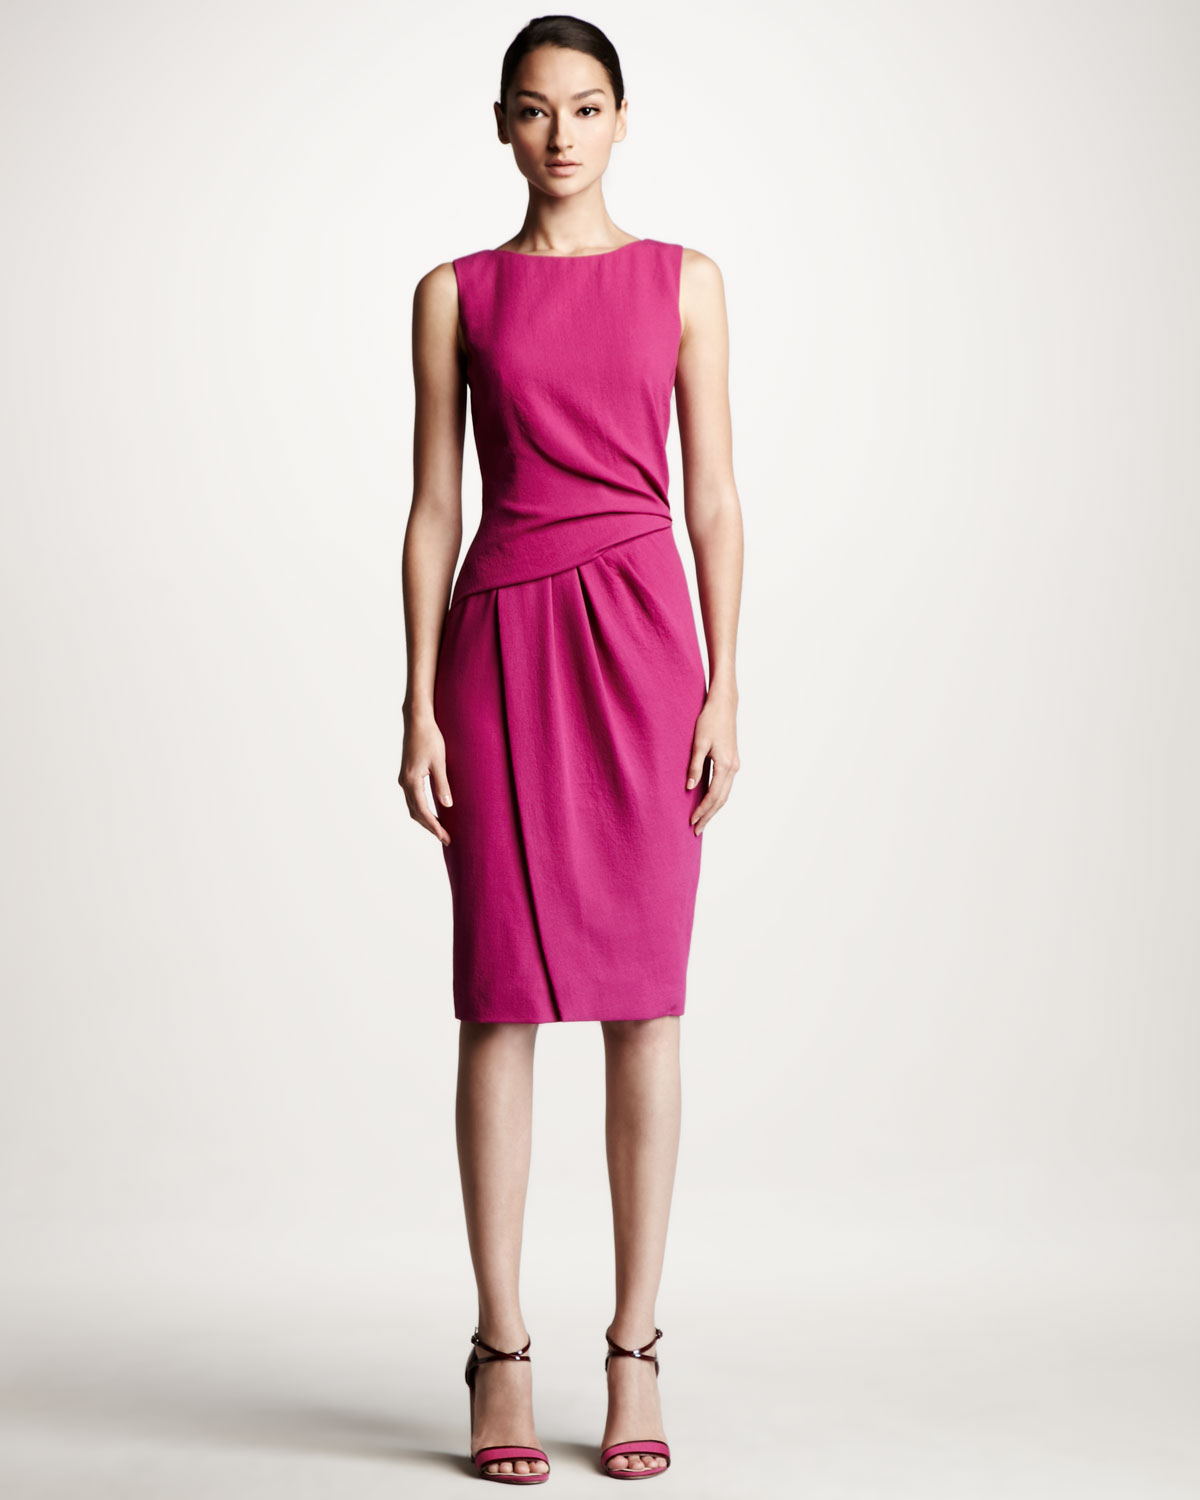 Lyst - Carolina herrera Draped Crepe Dress in Pink